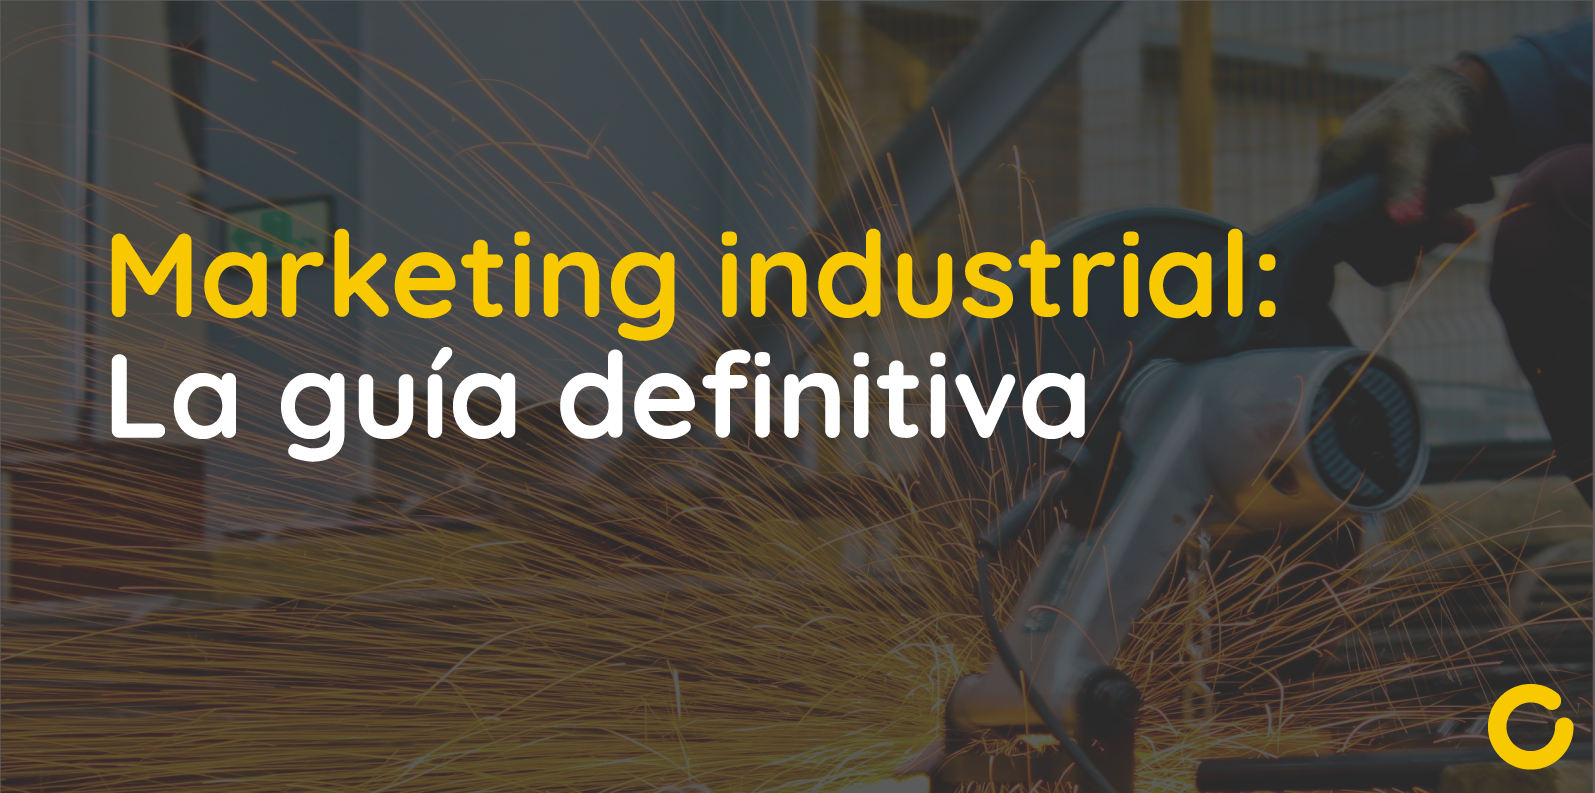 Marketing industrial- La guía definitiva